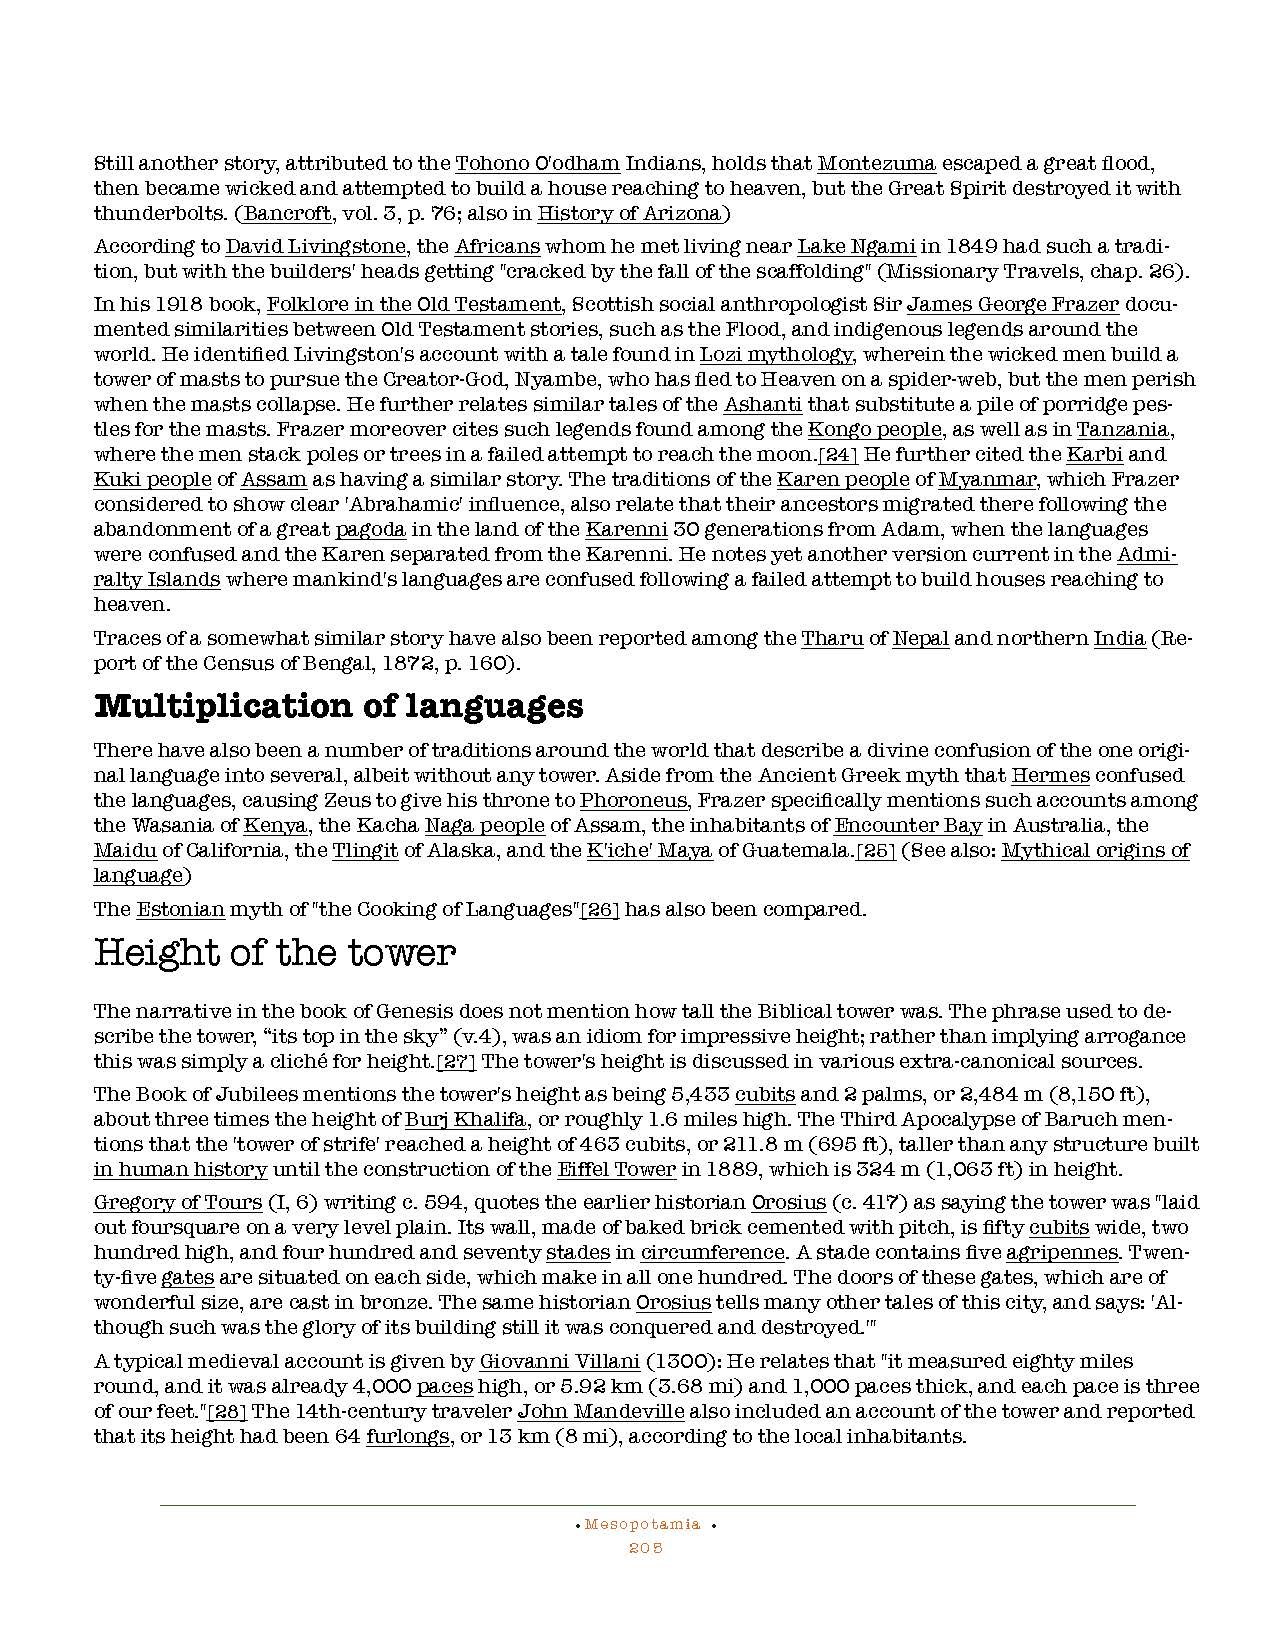 HOCE- Fertile Crescent Notes_Page_205.jpg